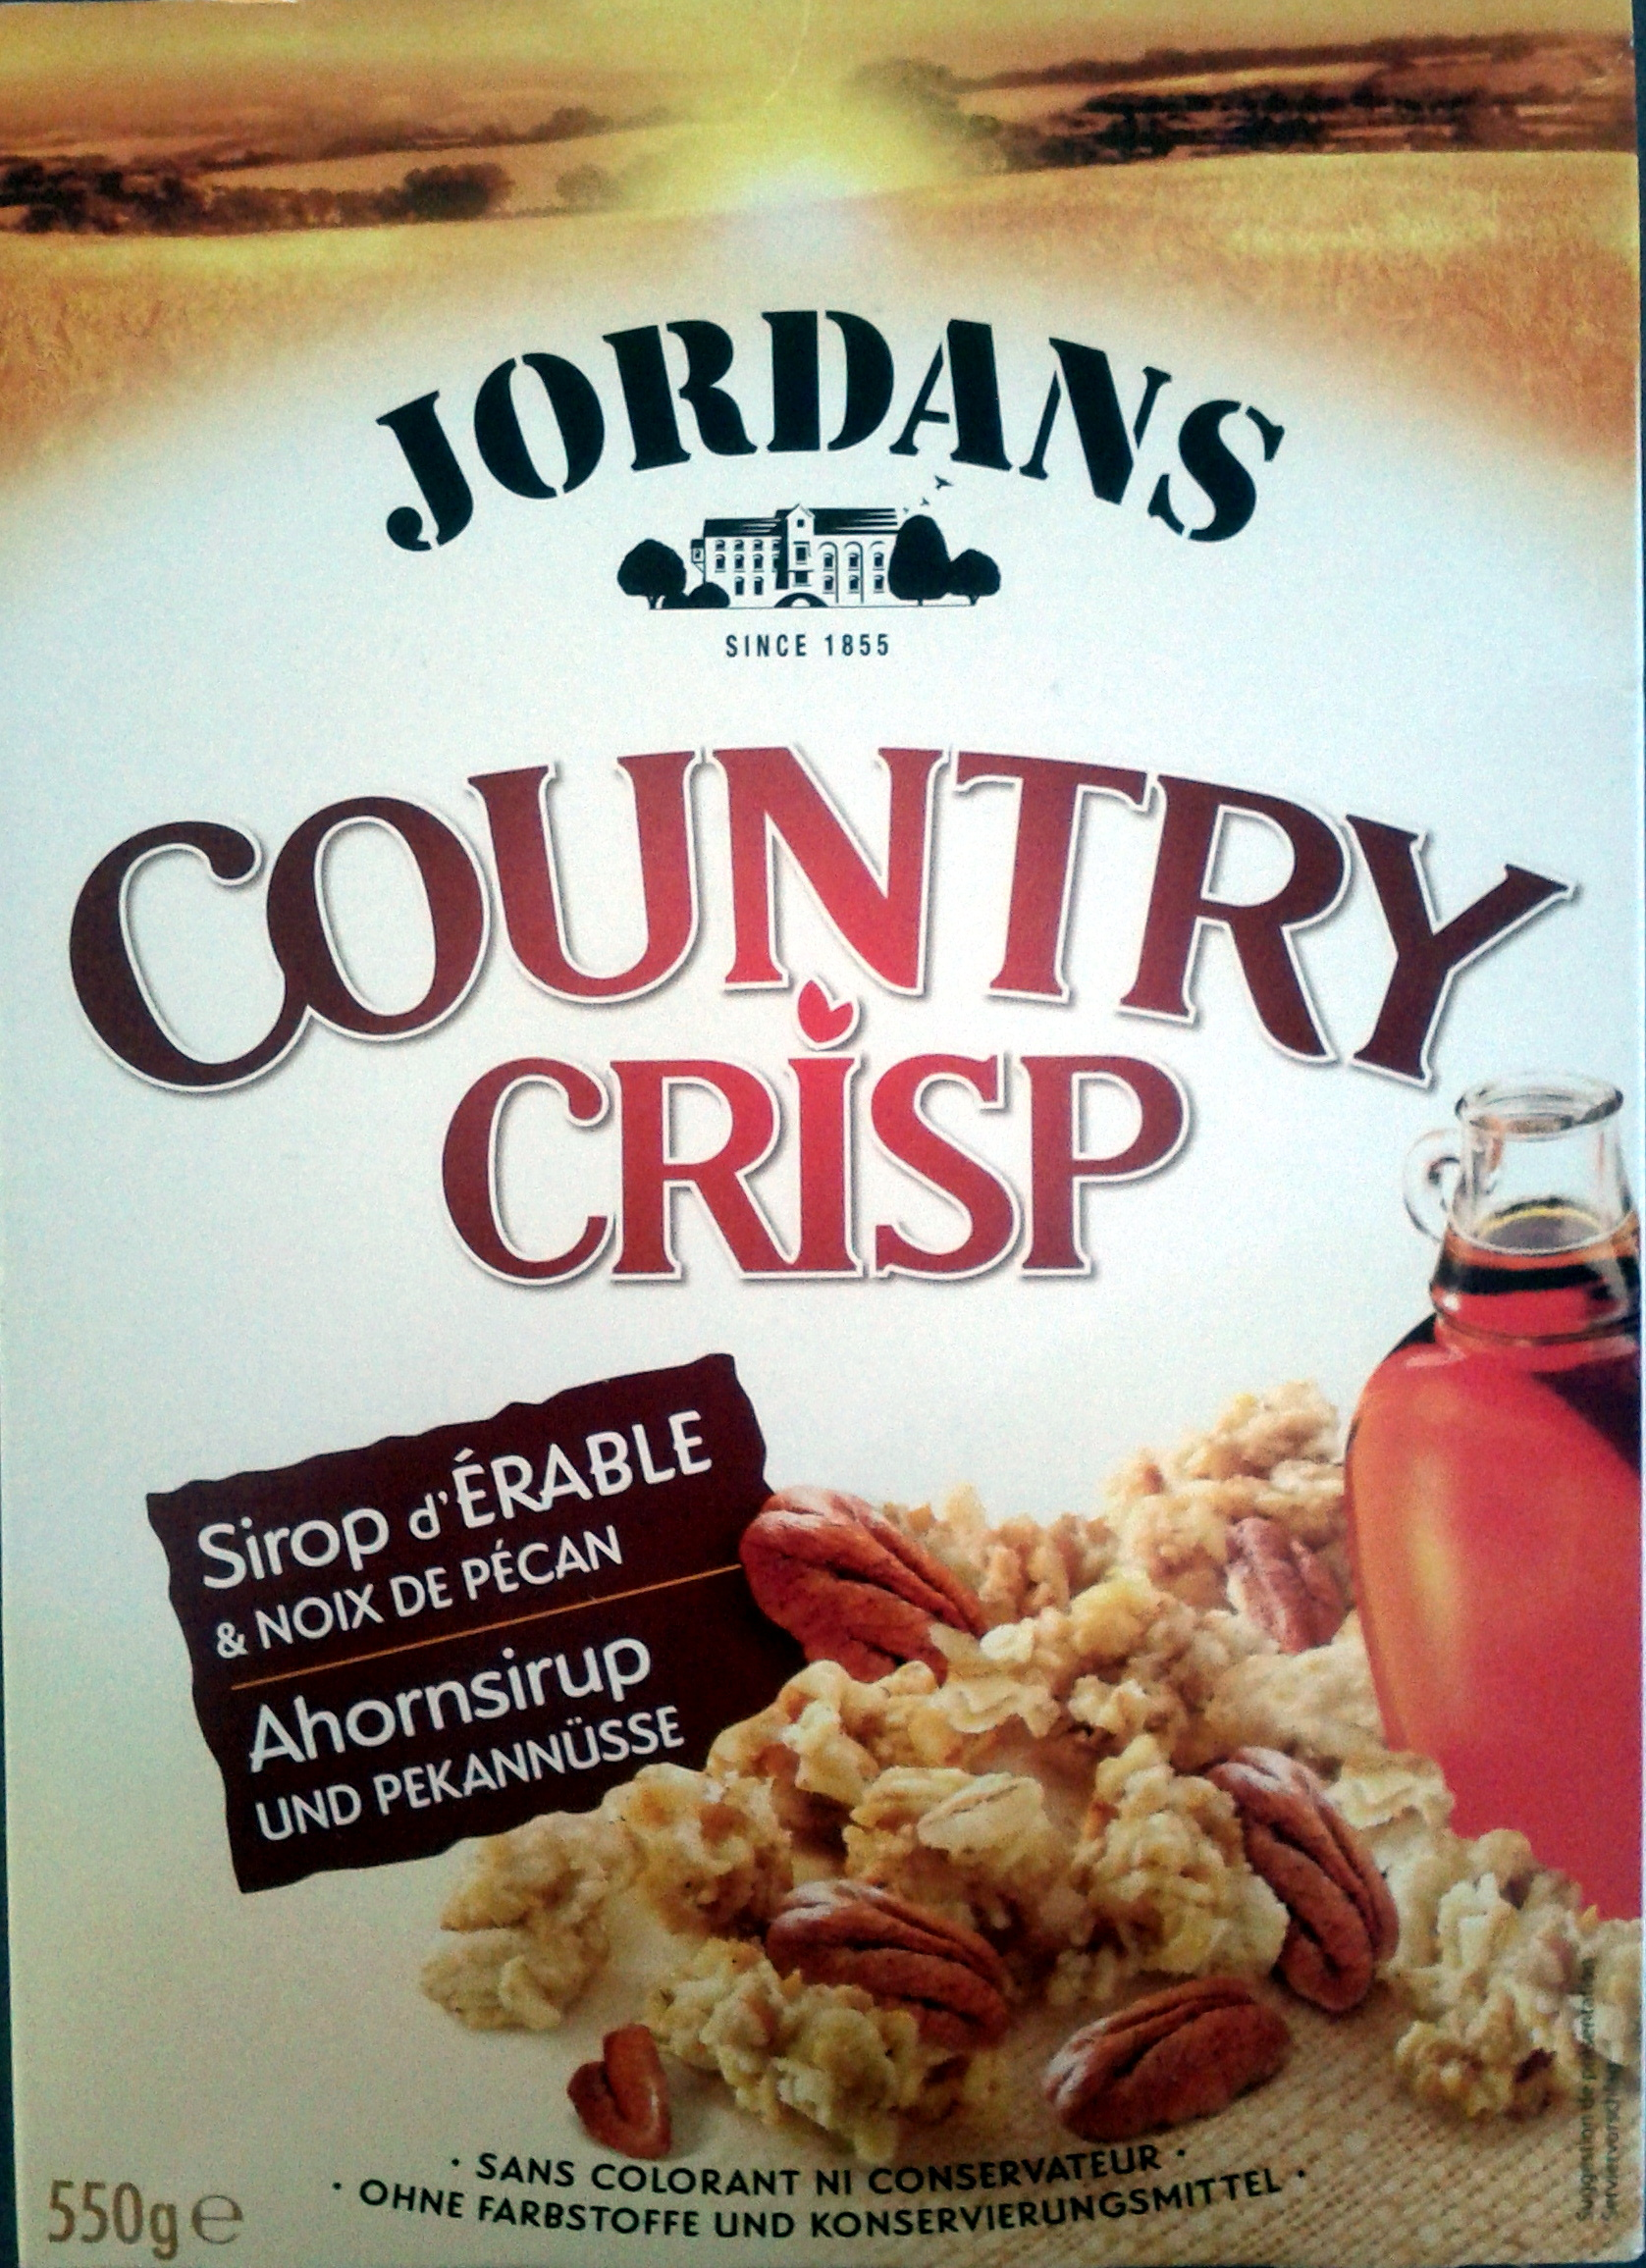 Country Crisp Sirop d'Erable & Noix de Pécan - Product